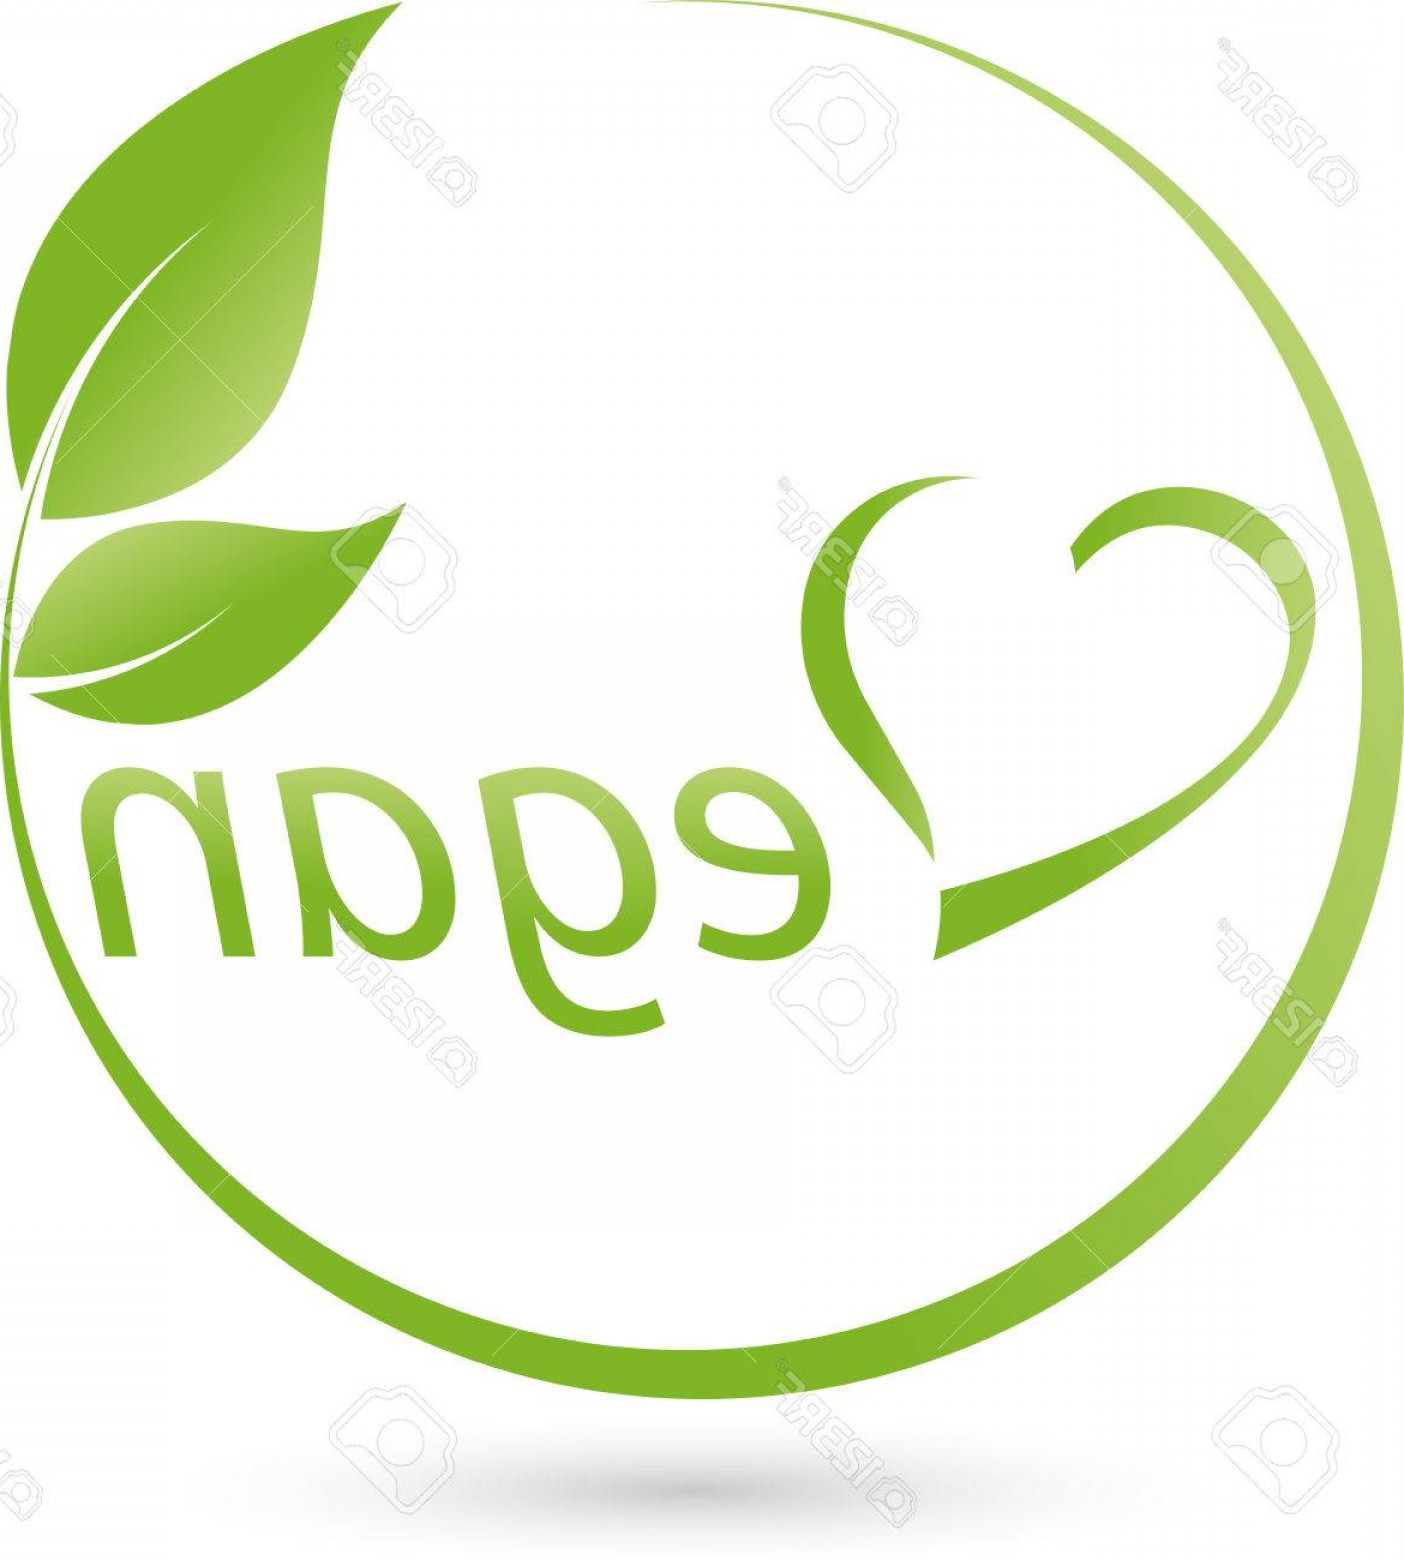 Vegan Heart Vectors: Photostock Vector Vegetarian Symbol With Scrolling Vegan Heart